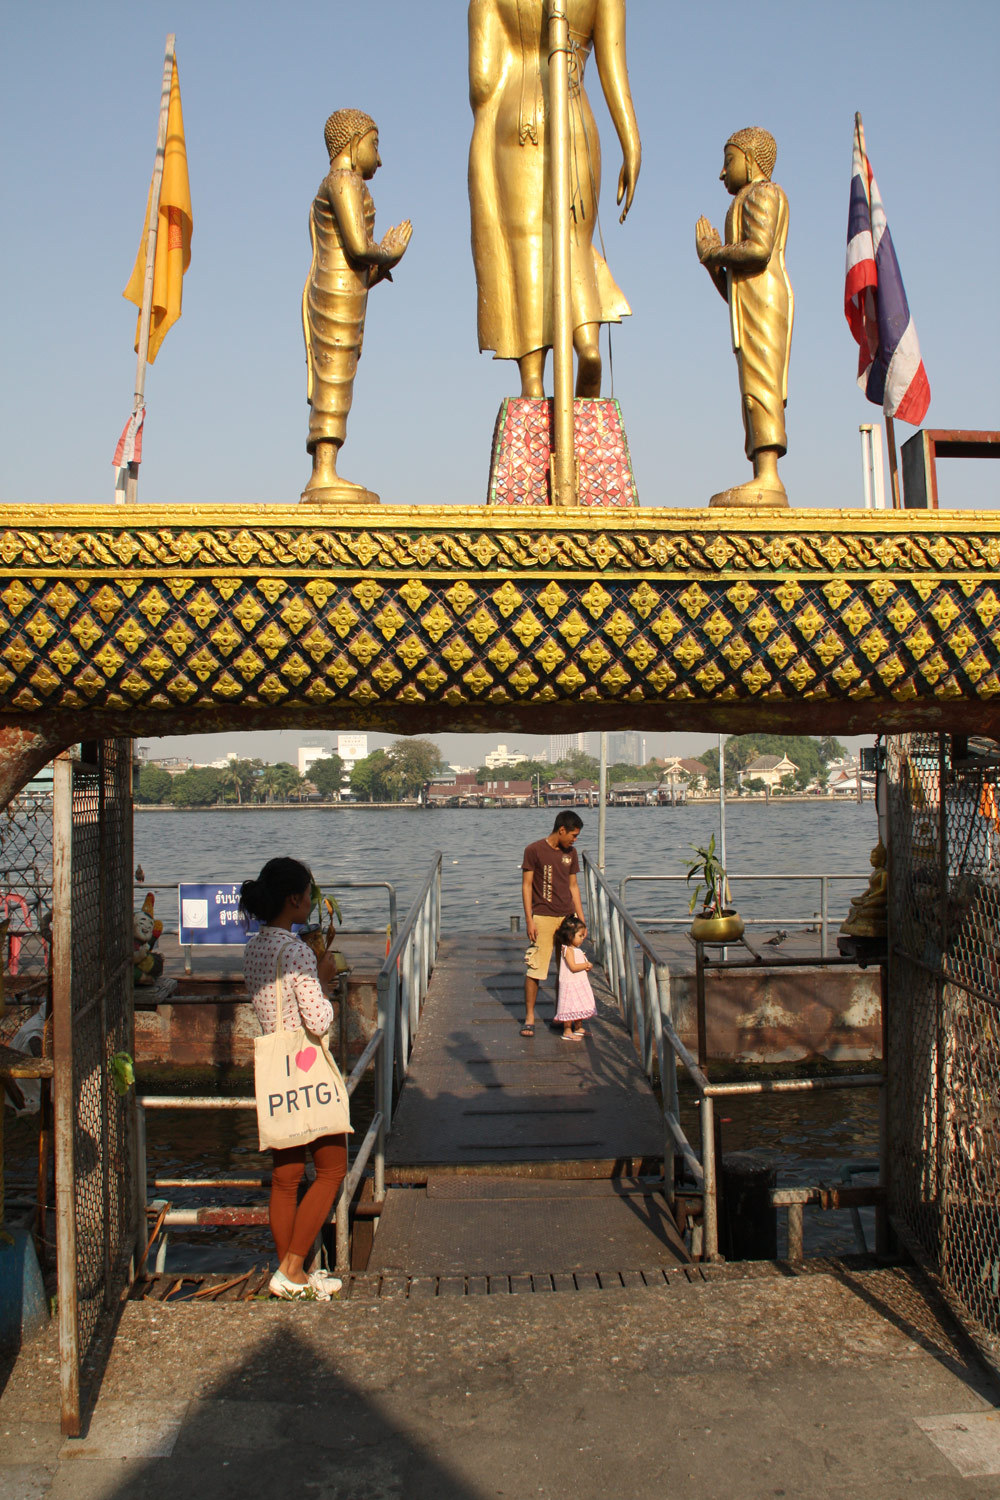 Waiting for the water taxi: PRTG wants to monitor Bangkok from Chao Phraya River!